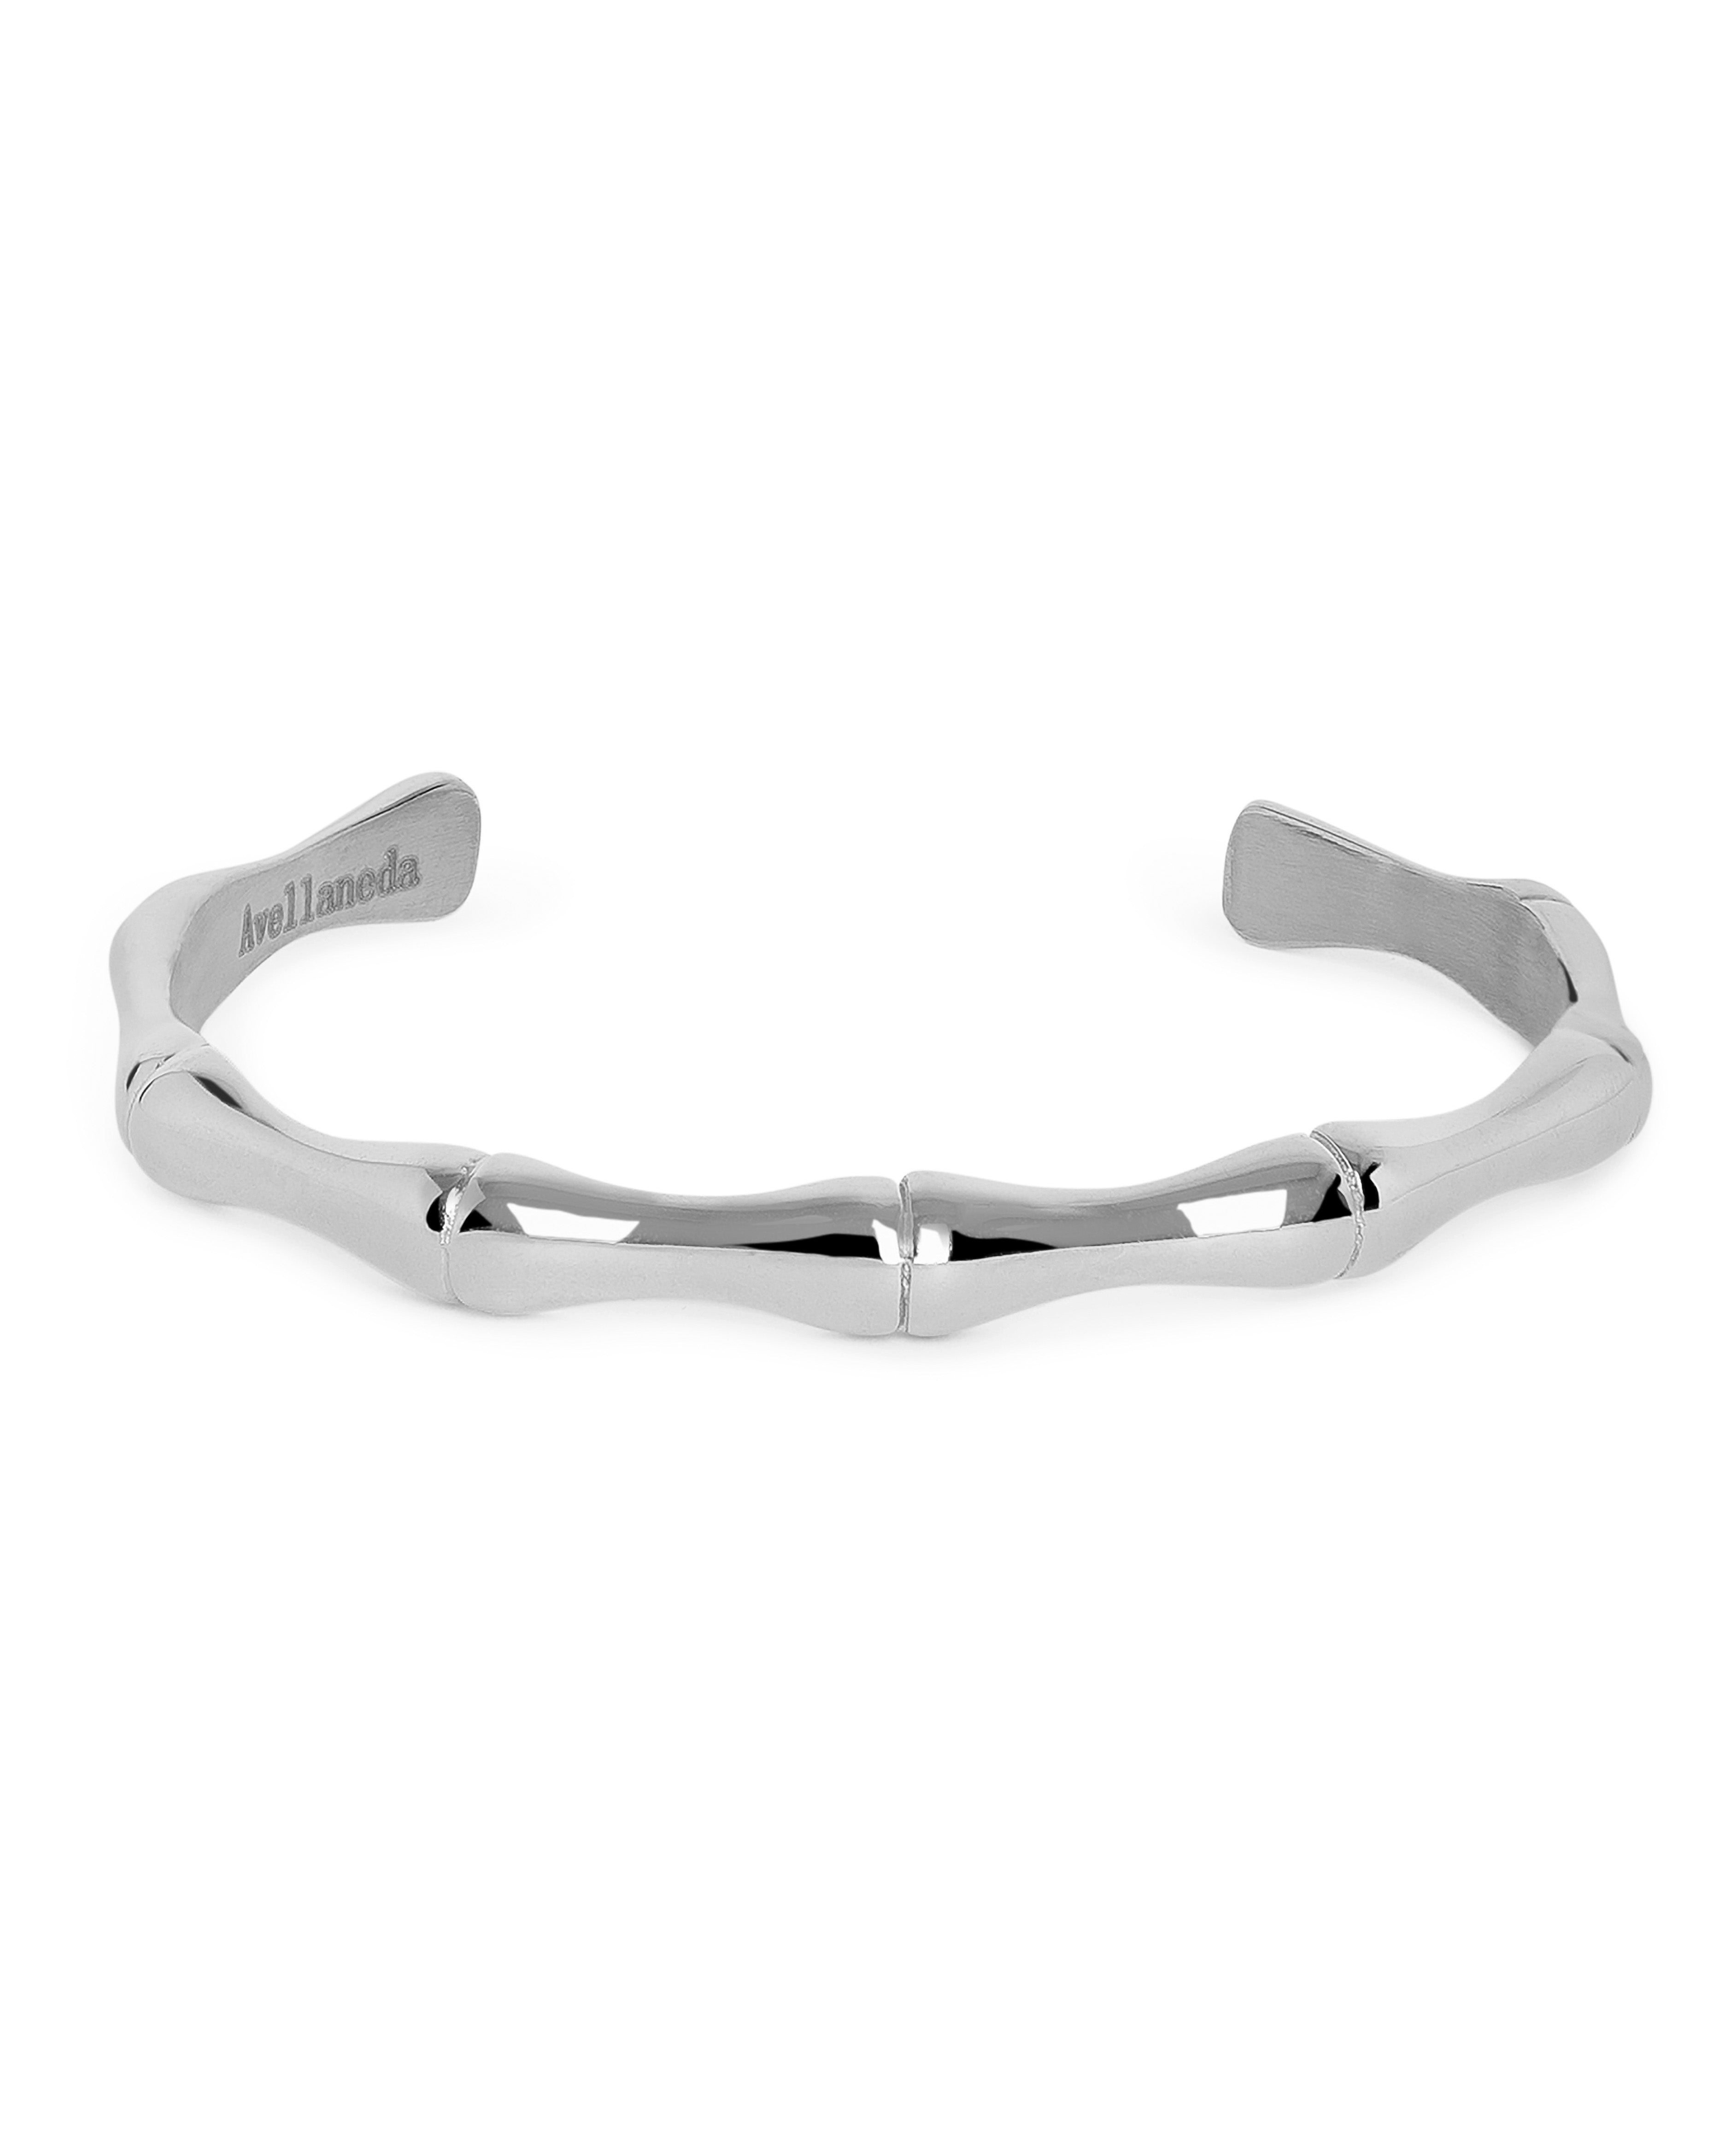 BAMBOO VINTAGE SILVER CUFF BANGLE